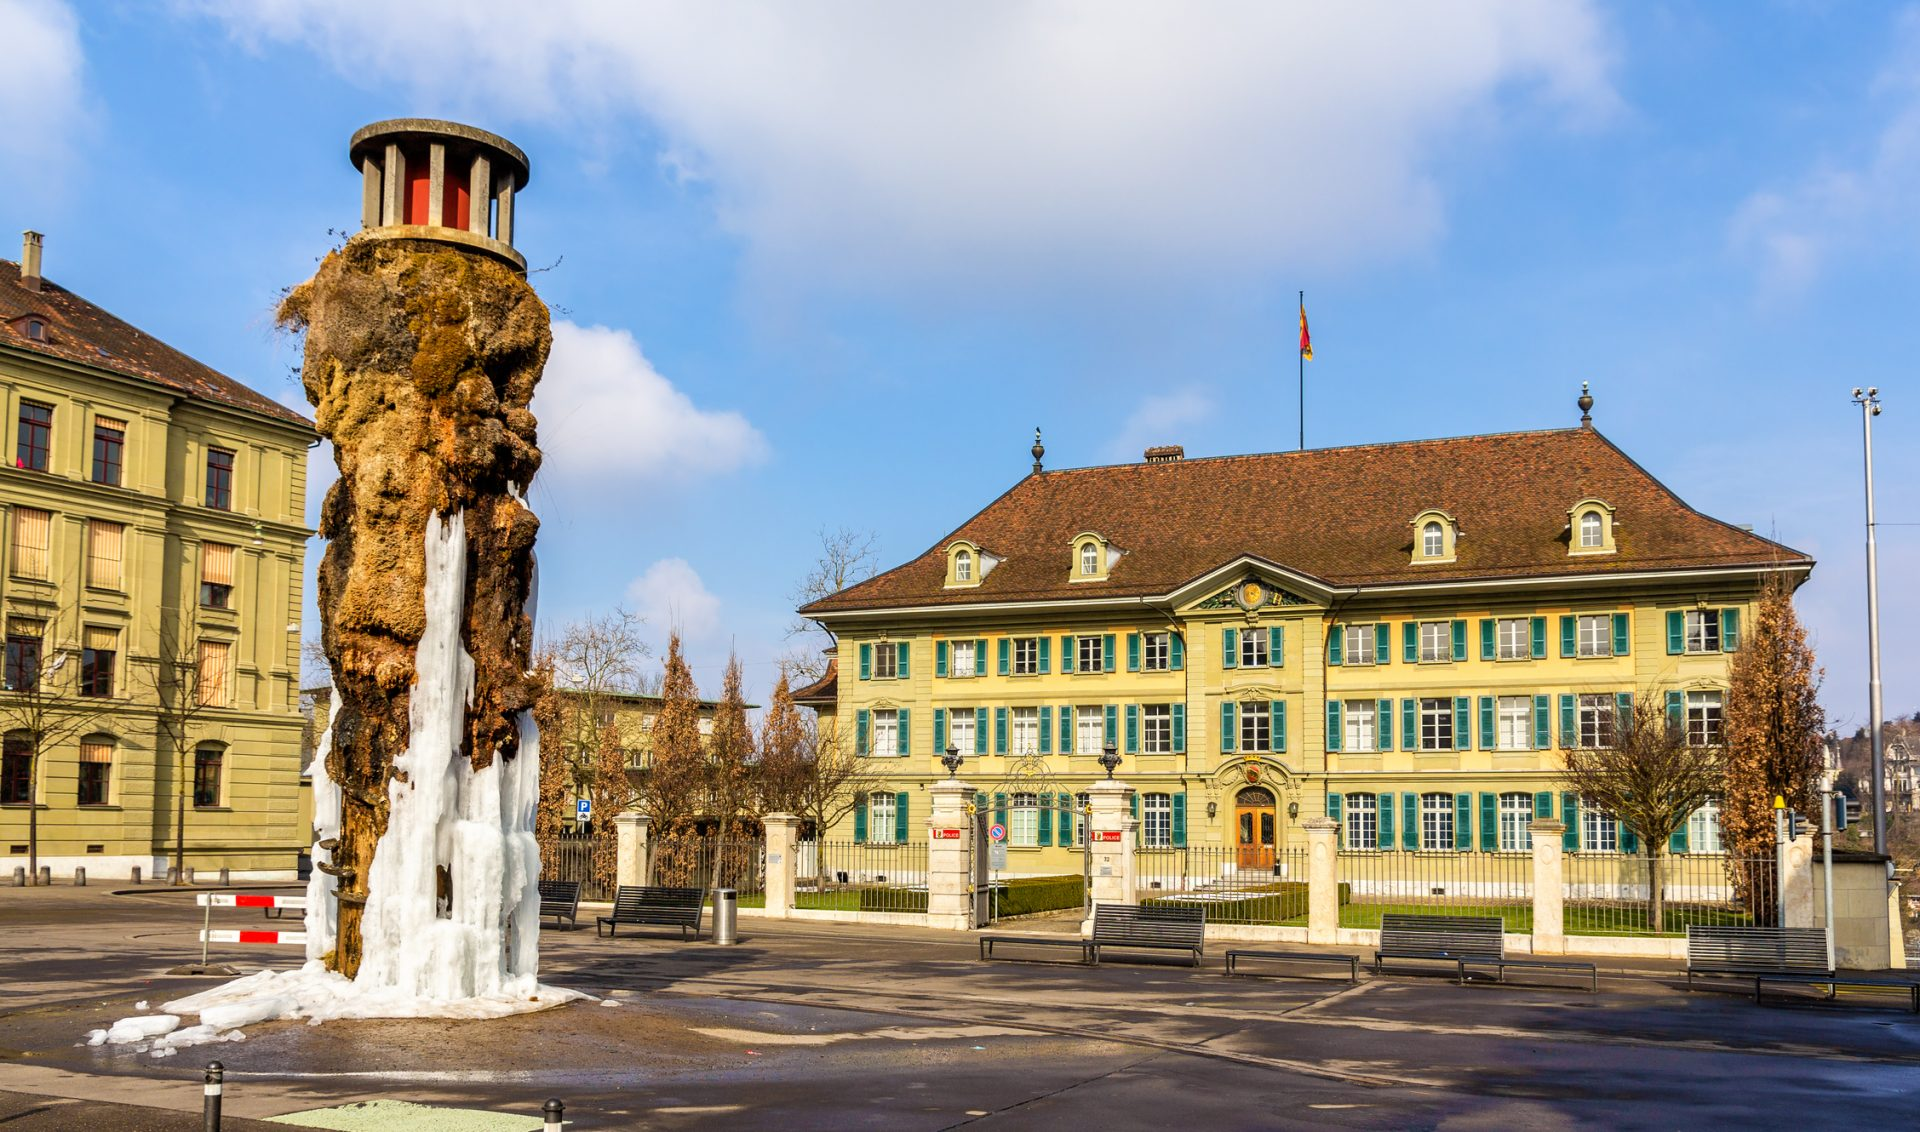 Frozen Meret Oppenheim Fountain and Police office in Bern